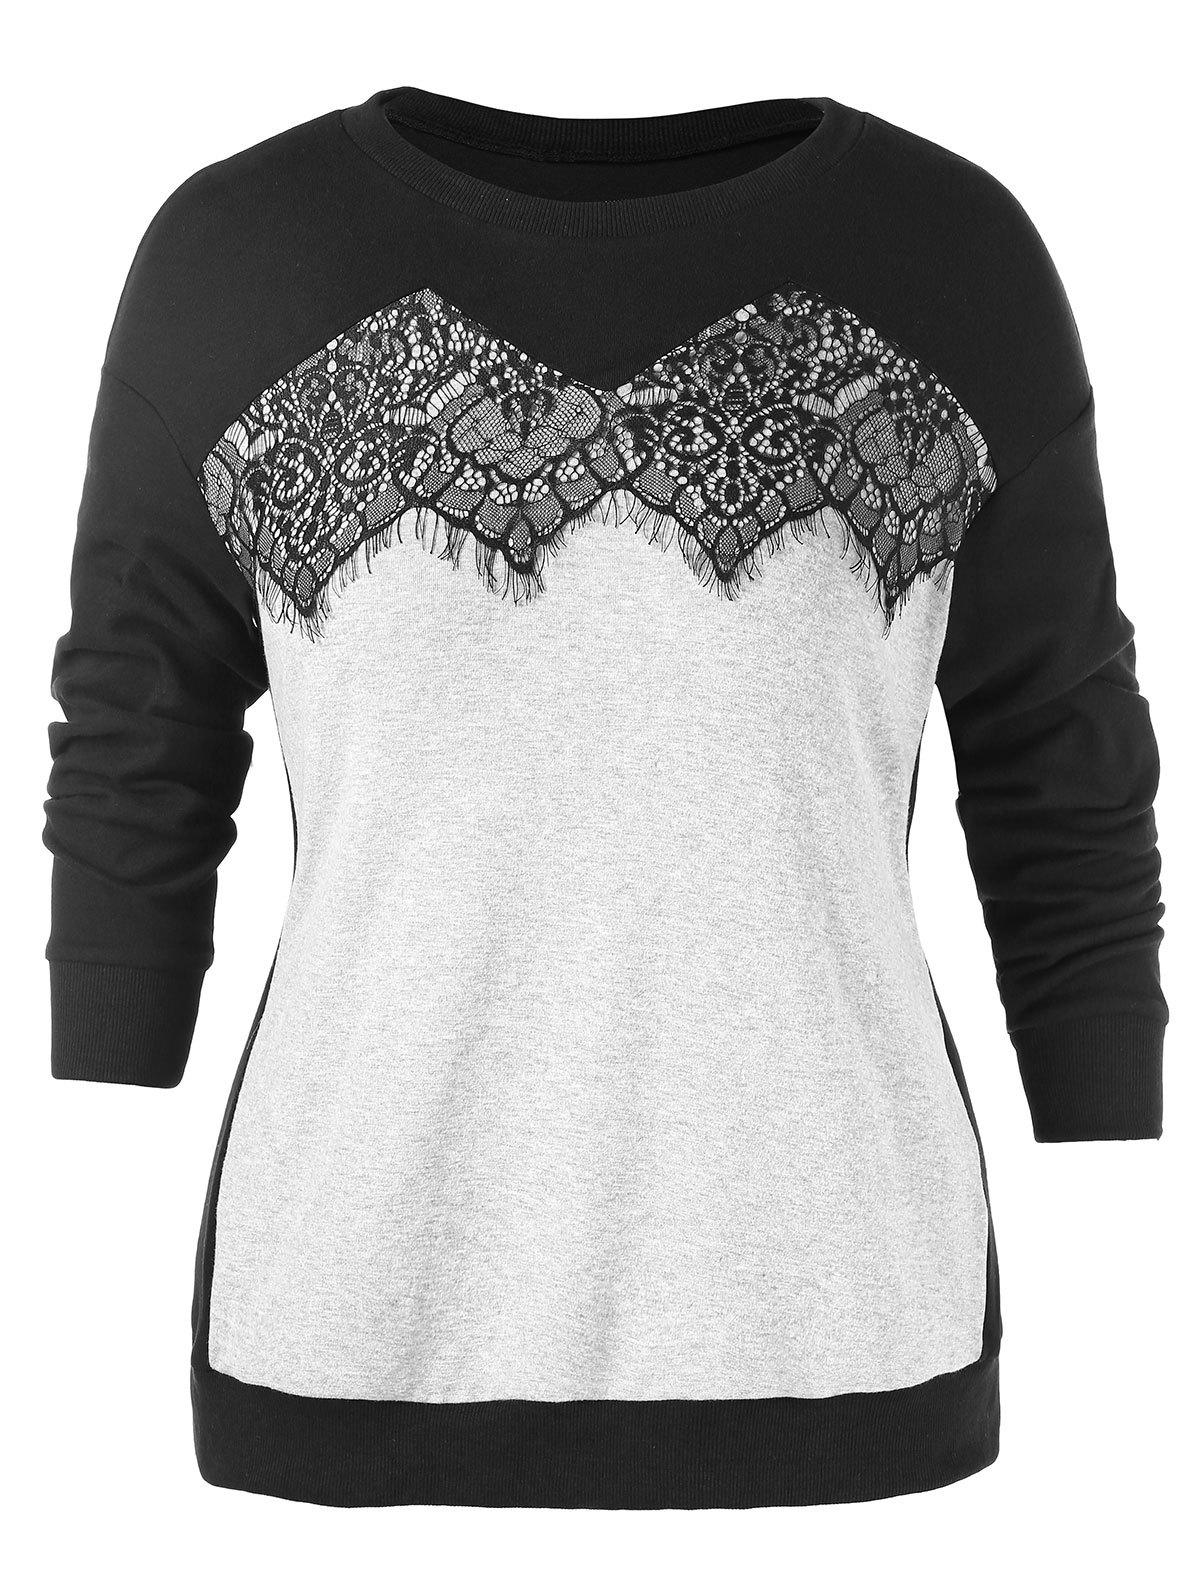 Fancy Plus Size Lace Insert Sweatshirt